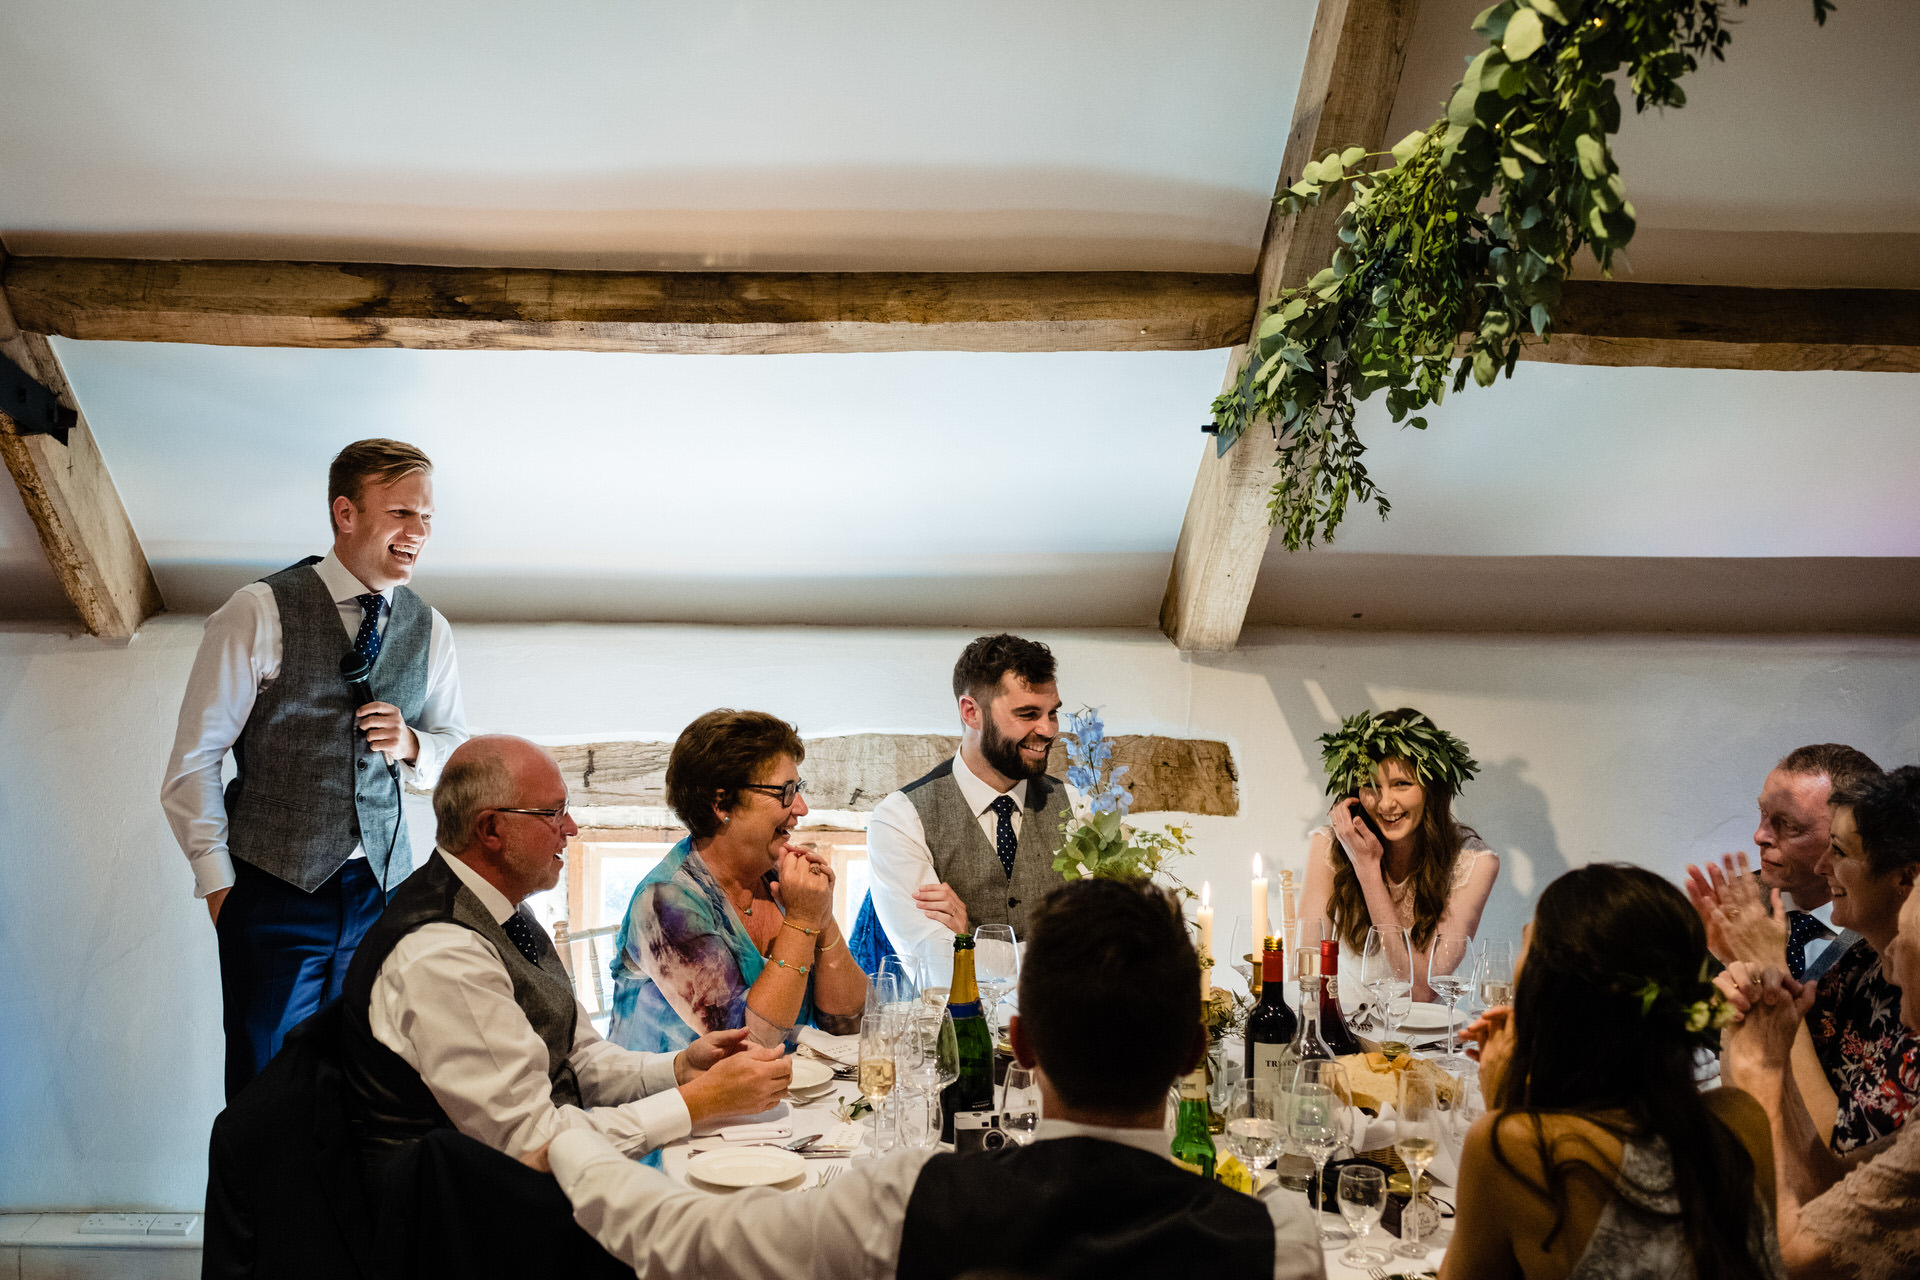 Pennard house somerset wedding photographer 19